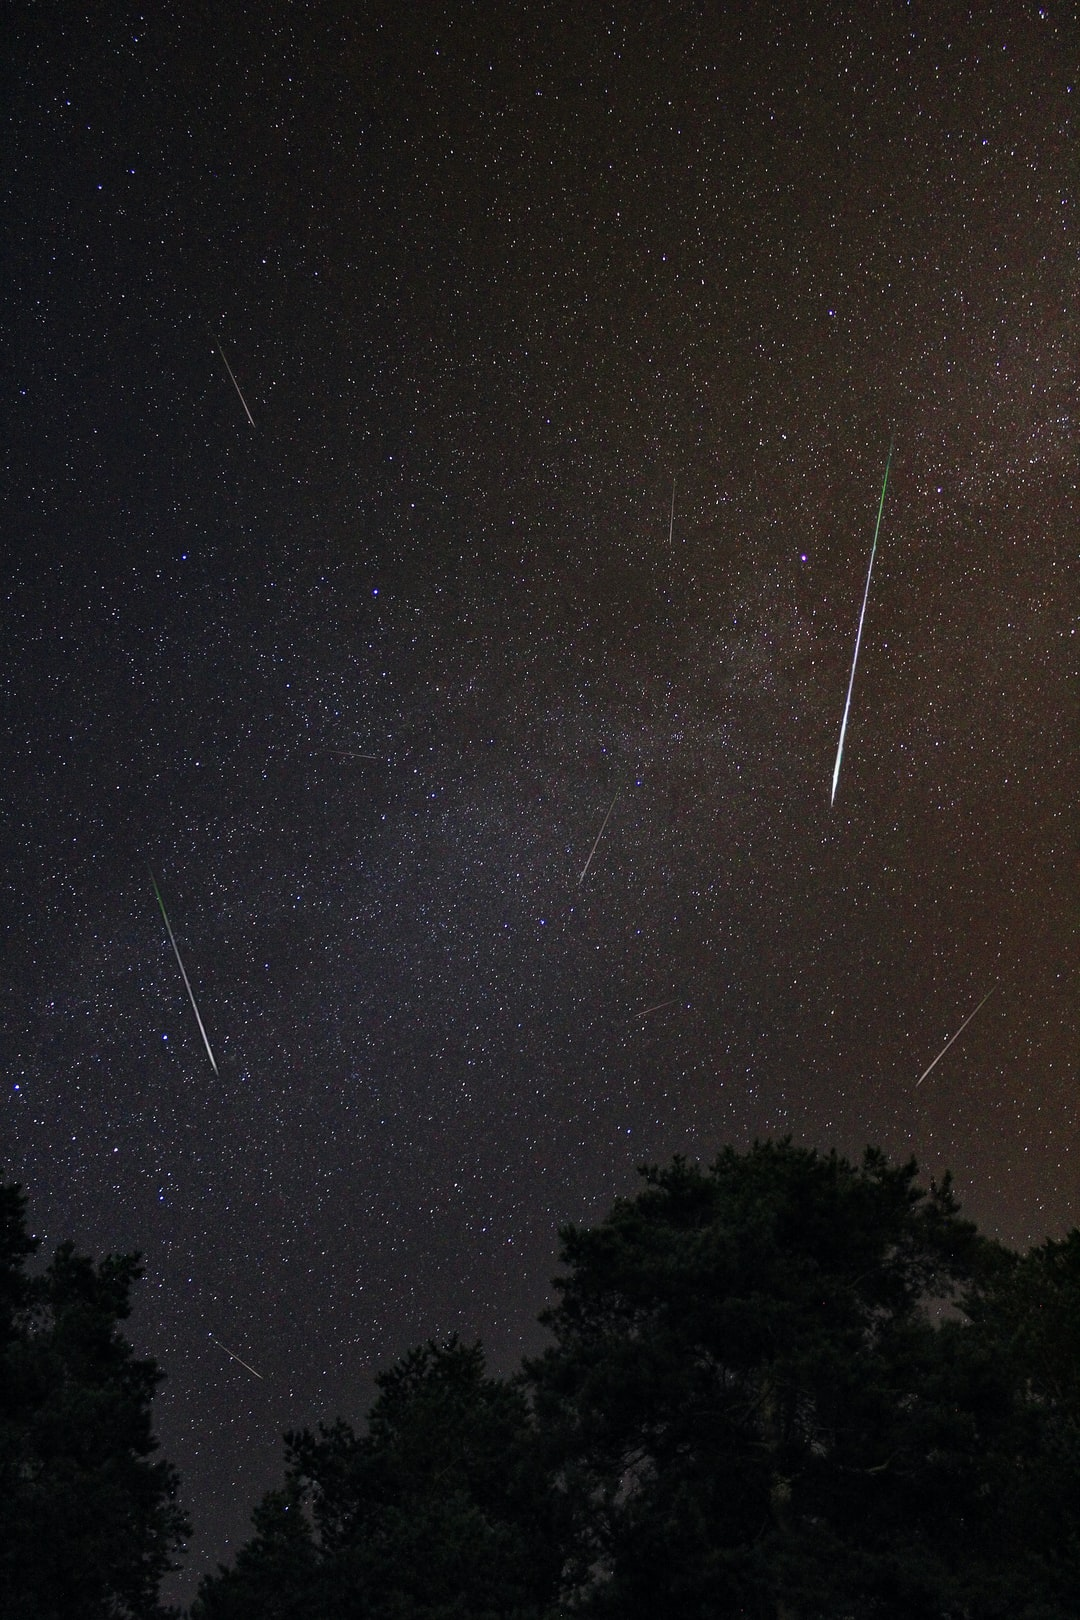 So it was a great show watching Perseid Meteor Shower